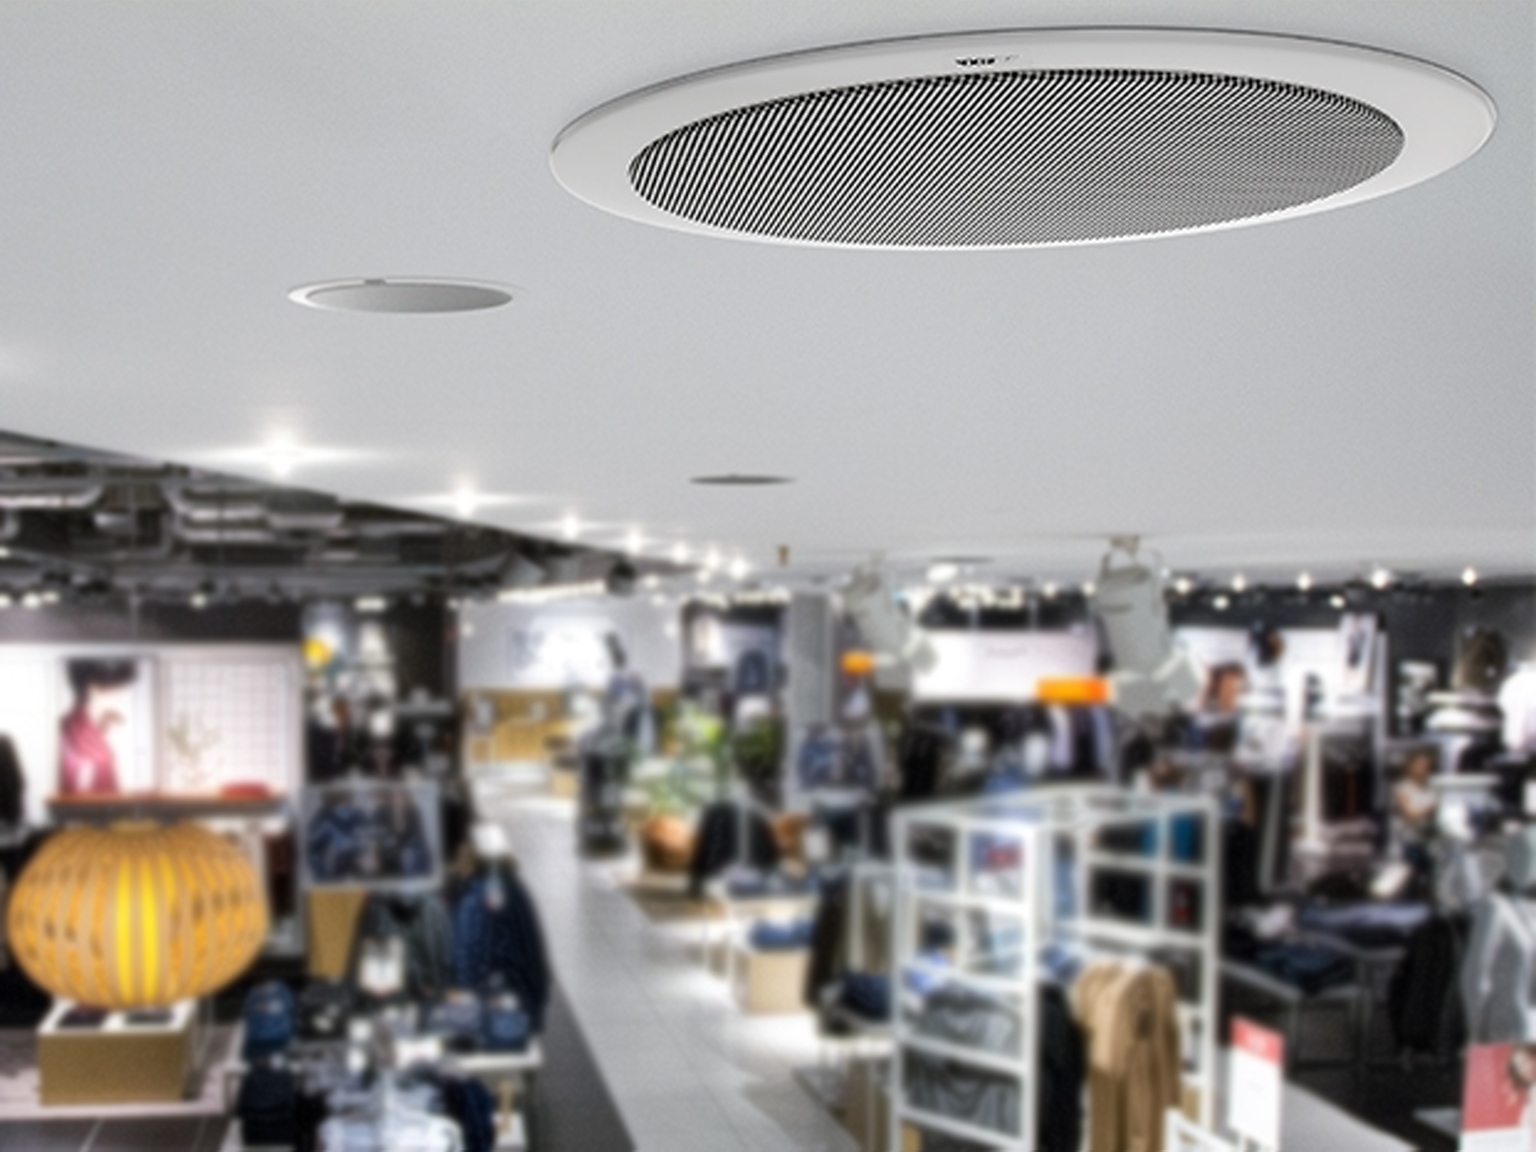 Ceiling Mounted Speakers for Retail